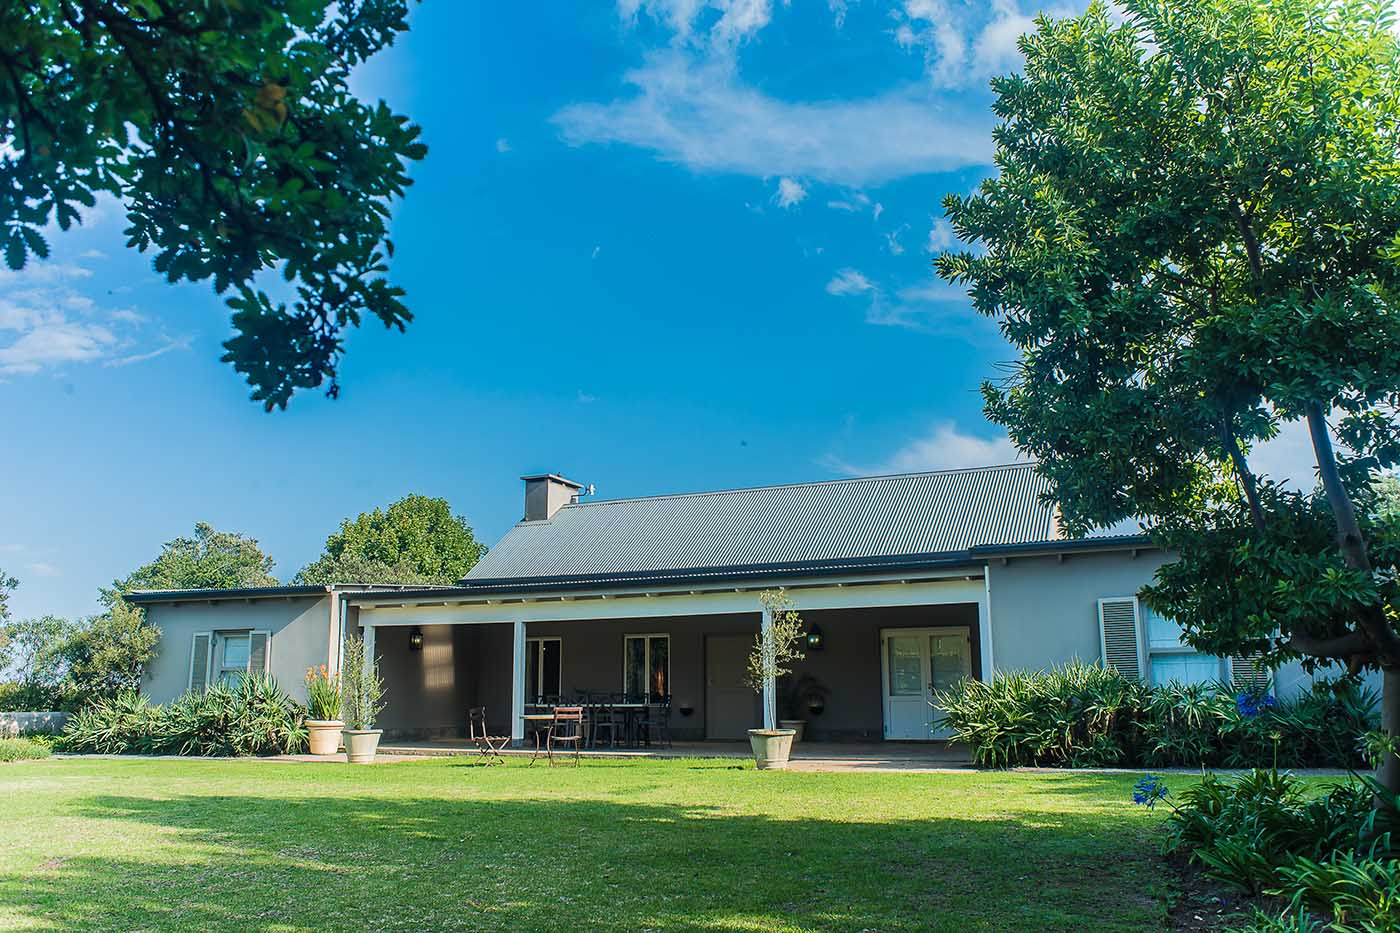 old-tom-morris-cottage-gallery-accommodation-gowrie-Nottingham-Road-kzn